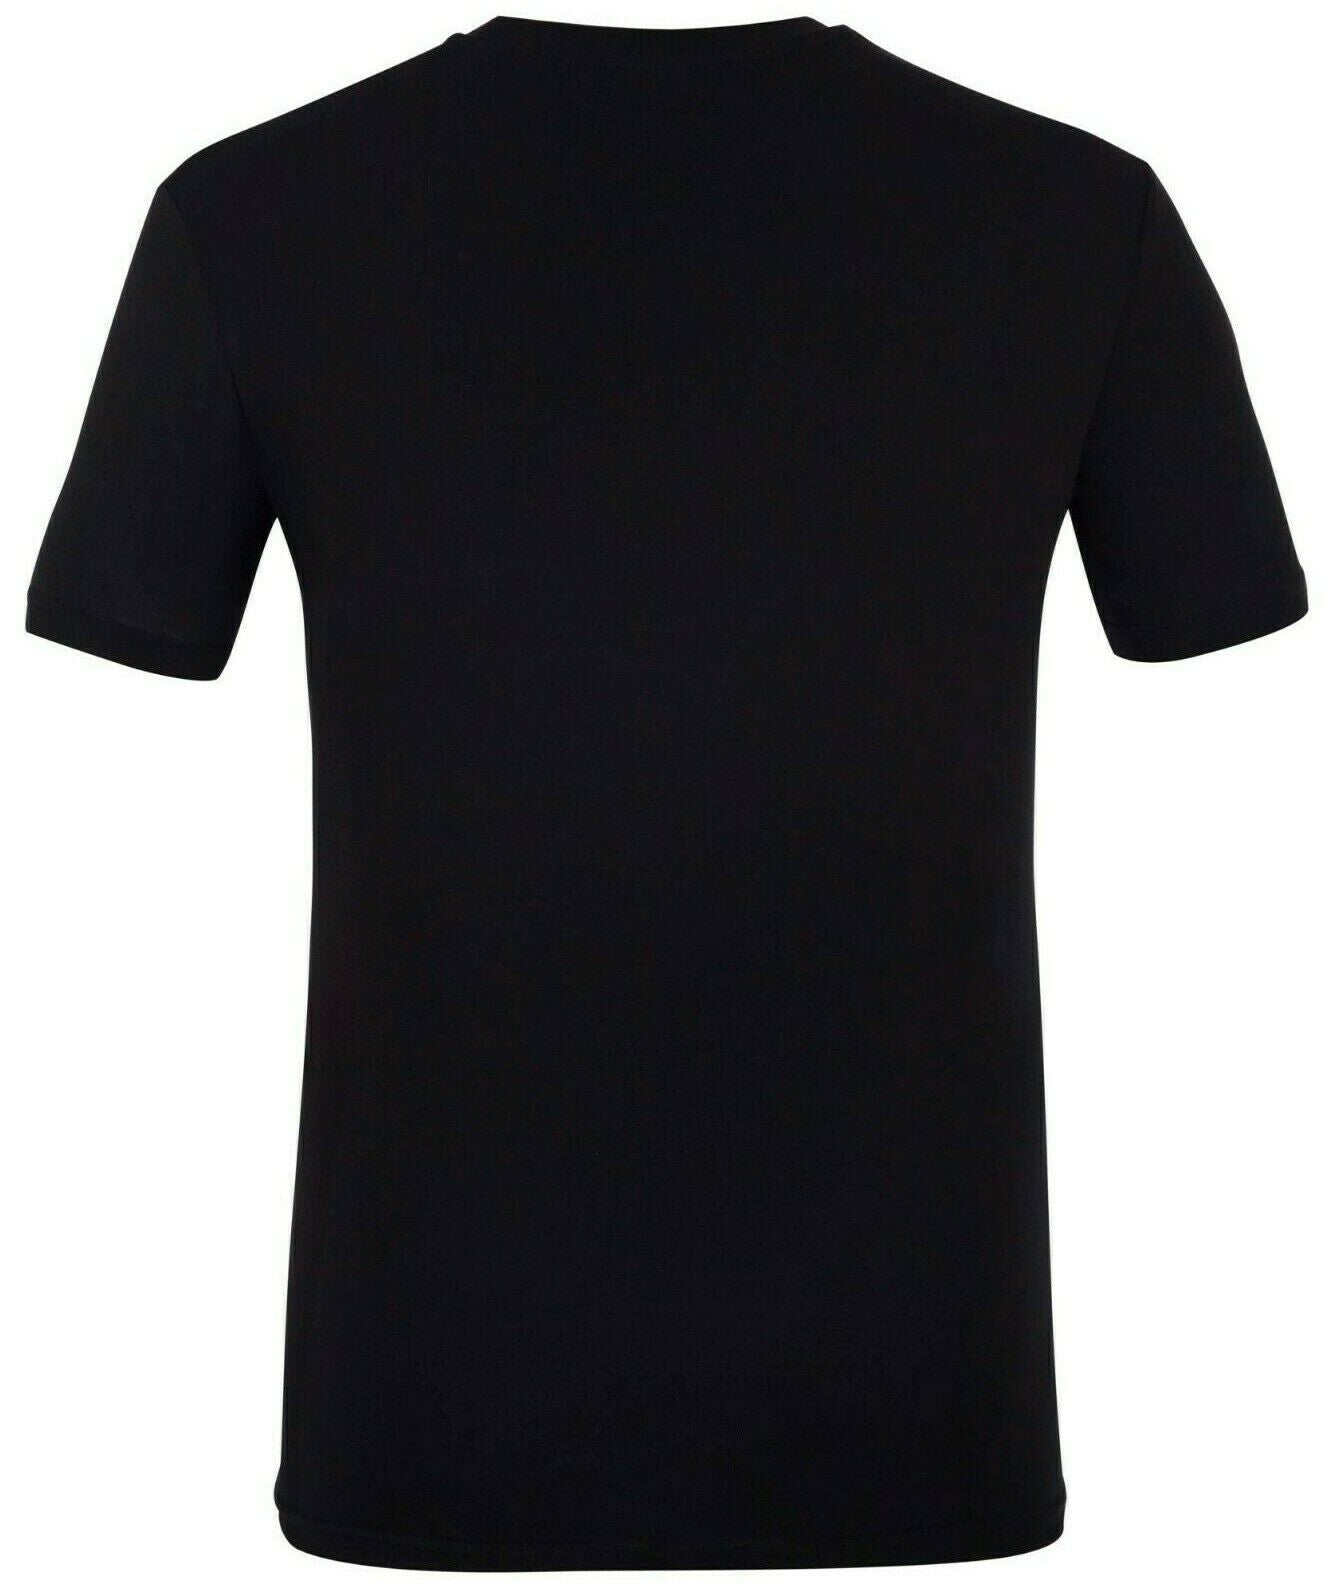 Calvin Klein Black Men's T-Shirt 100% Cotton